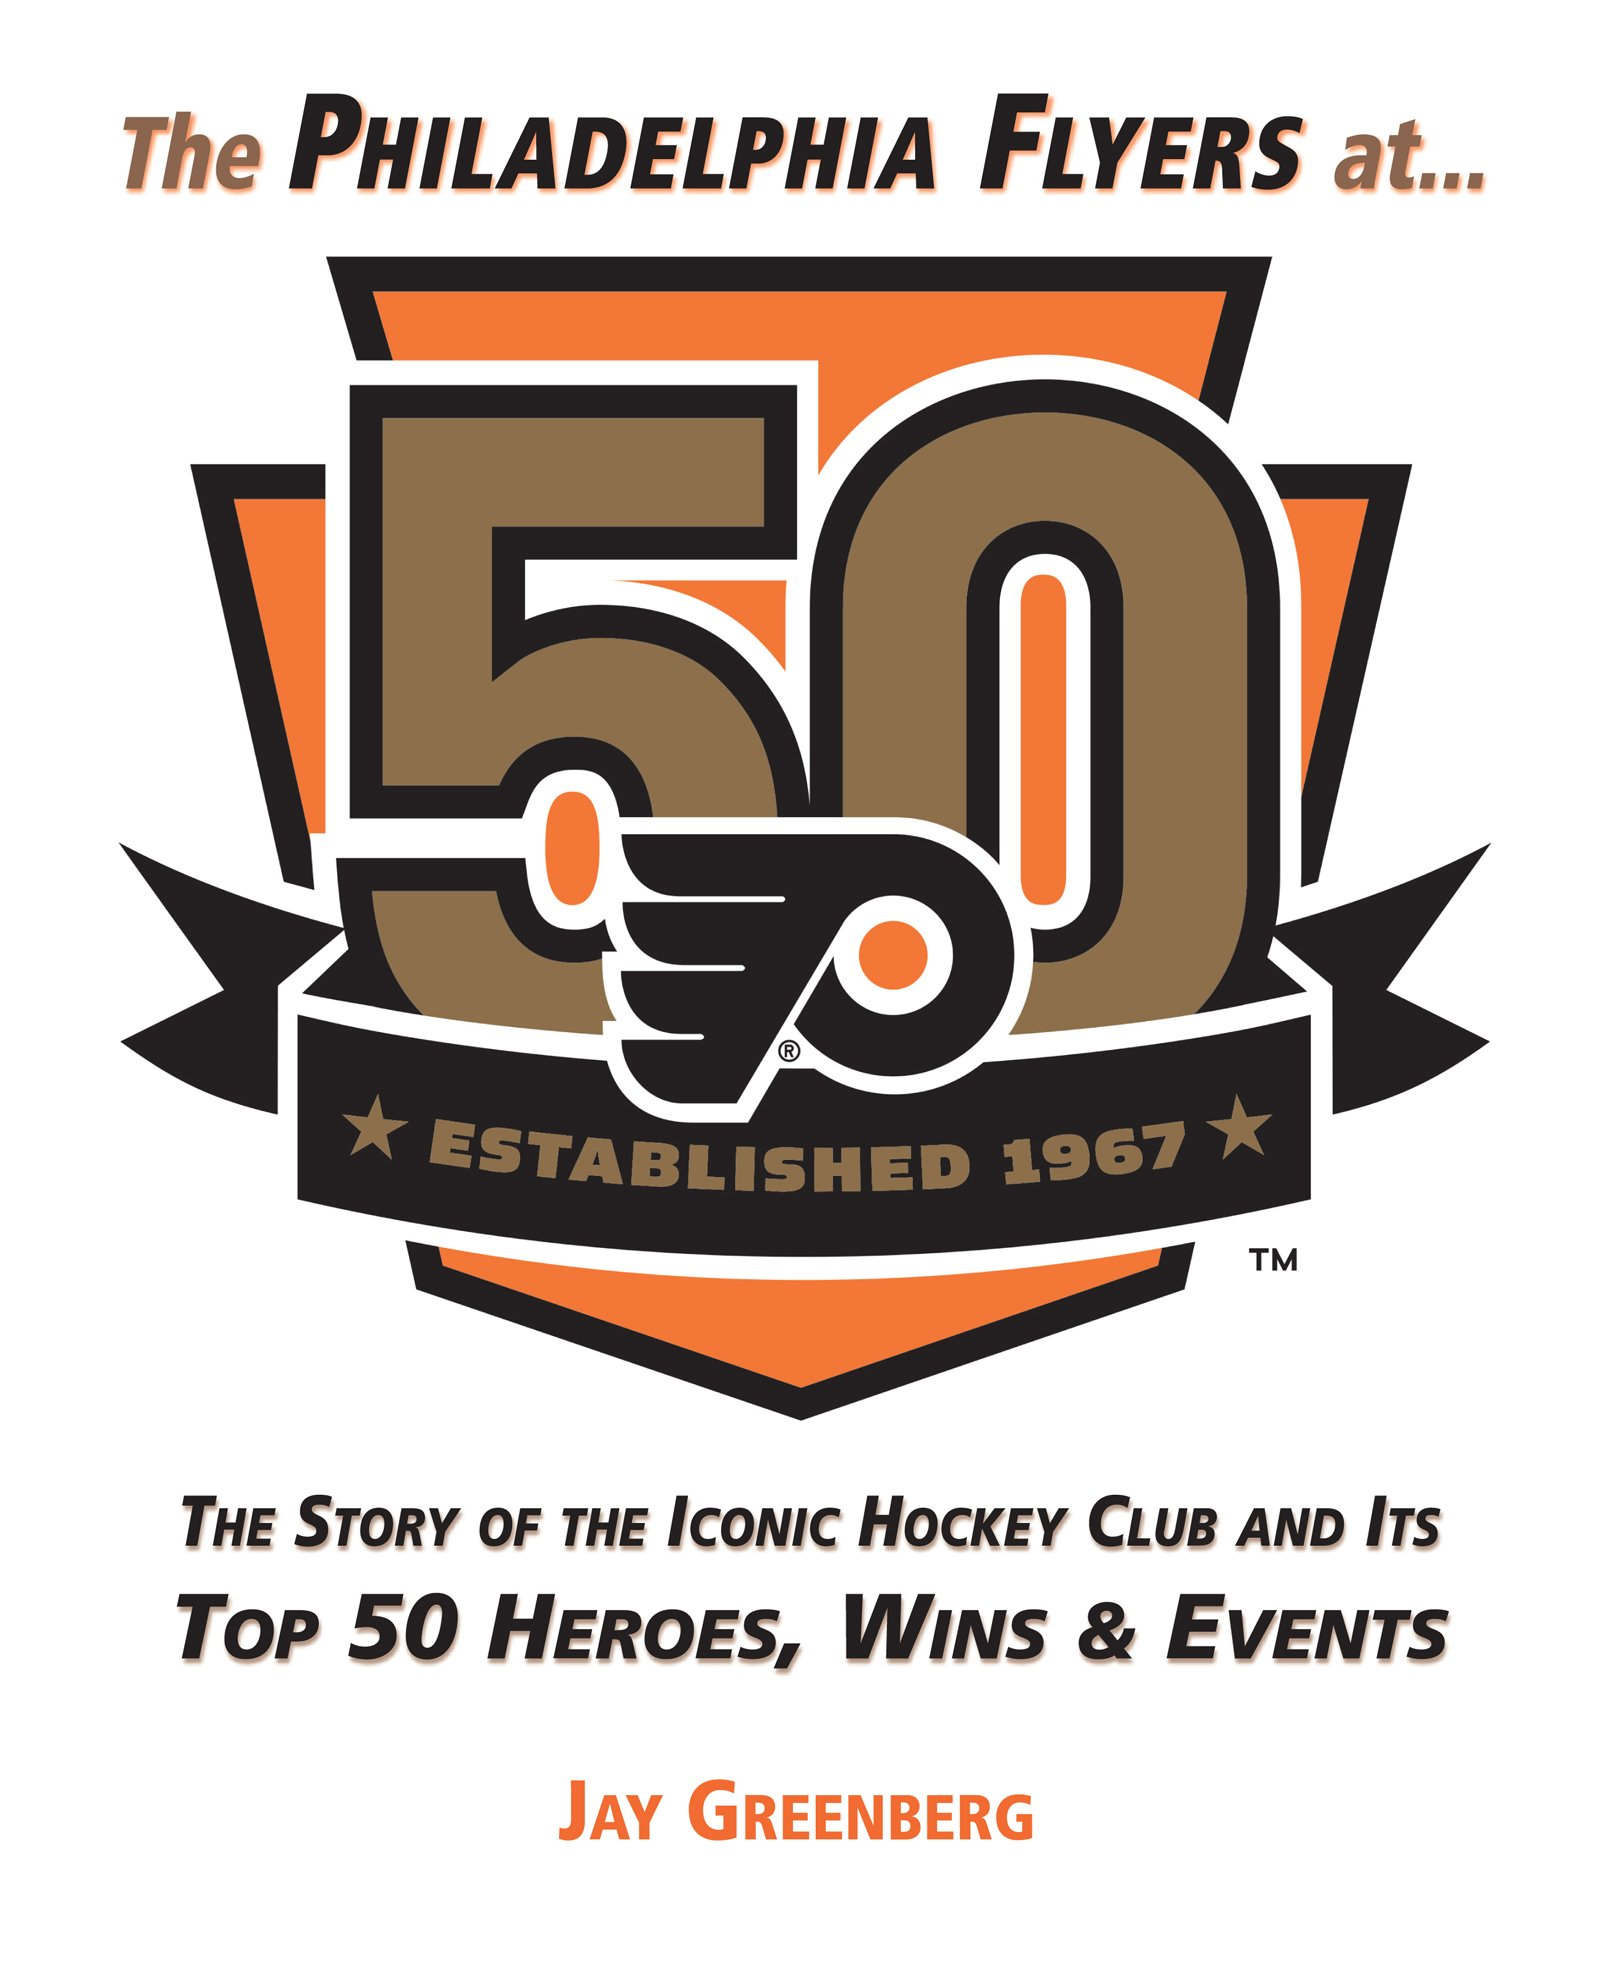 Image OfPhiladelphia Flyers At 50: The Story Of The Iconic Hockey Club And Its Top 50 Heroes, Wins & Events: The Story Of The Icon...